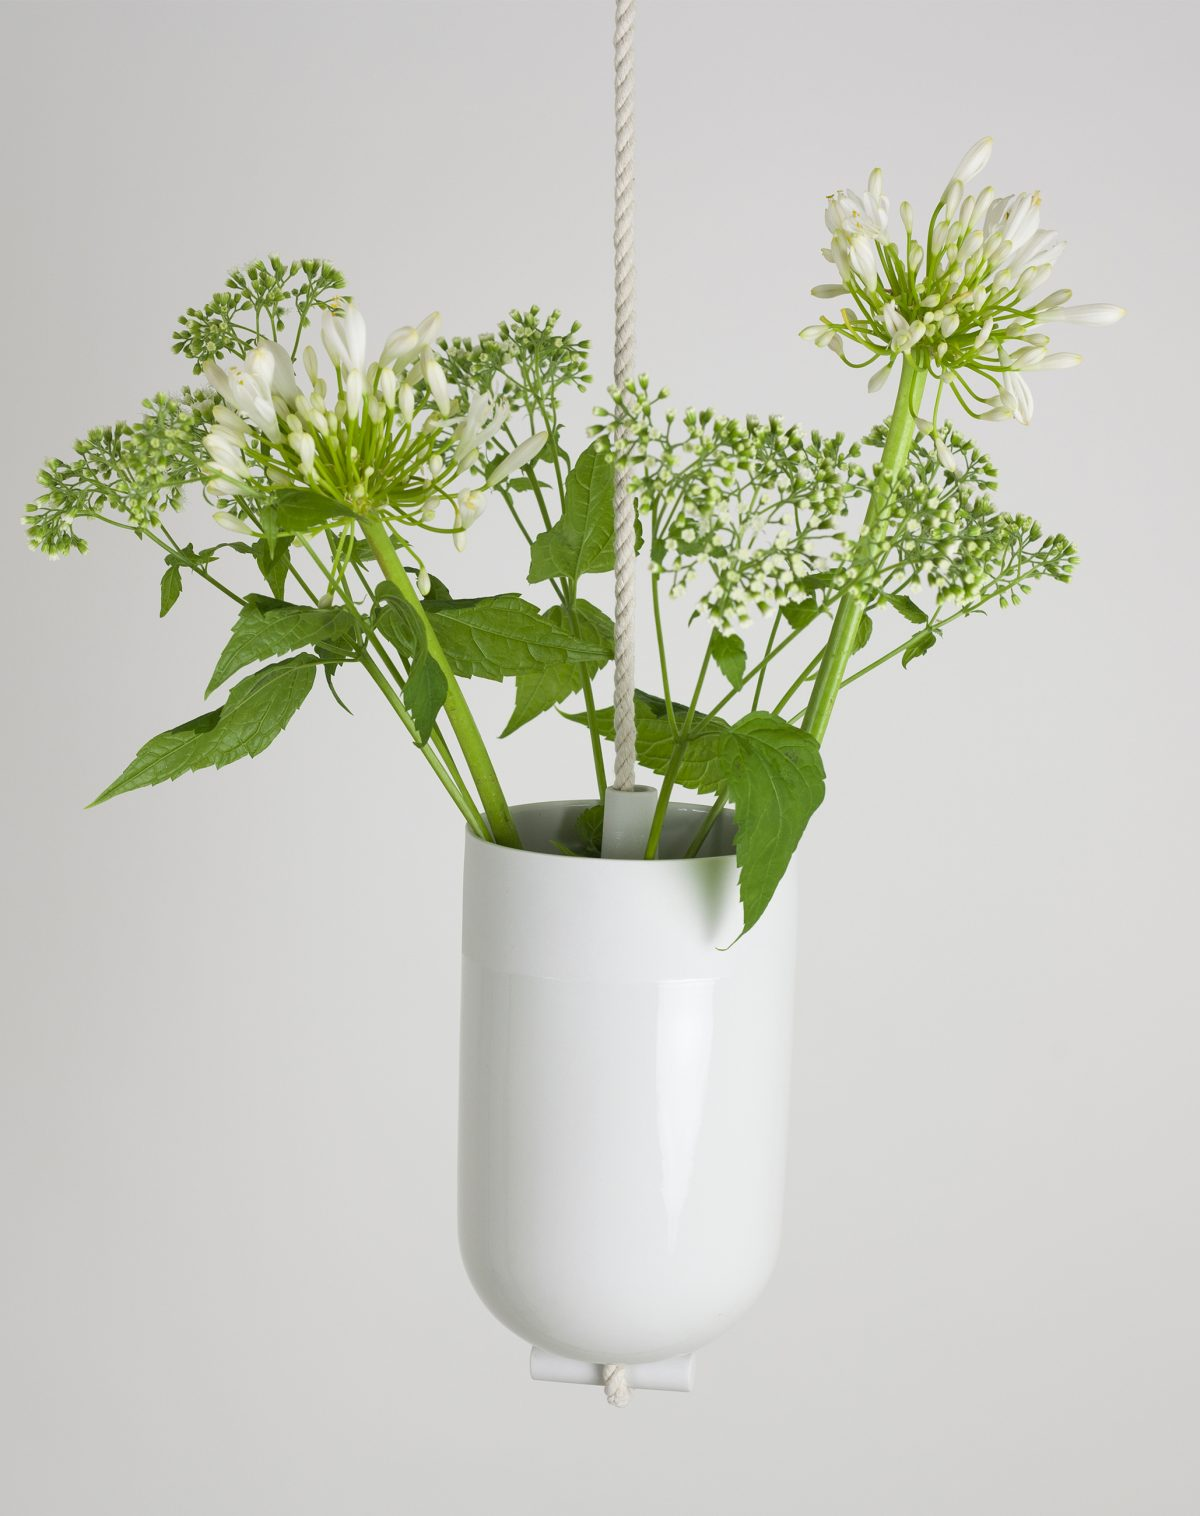 Spatial vase white flower LotteDouwes – gimmii